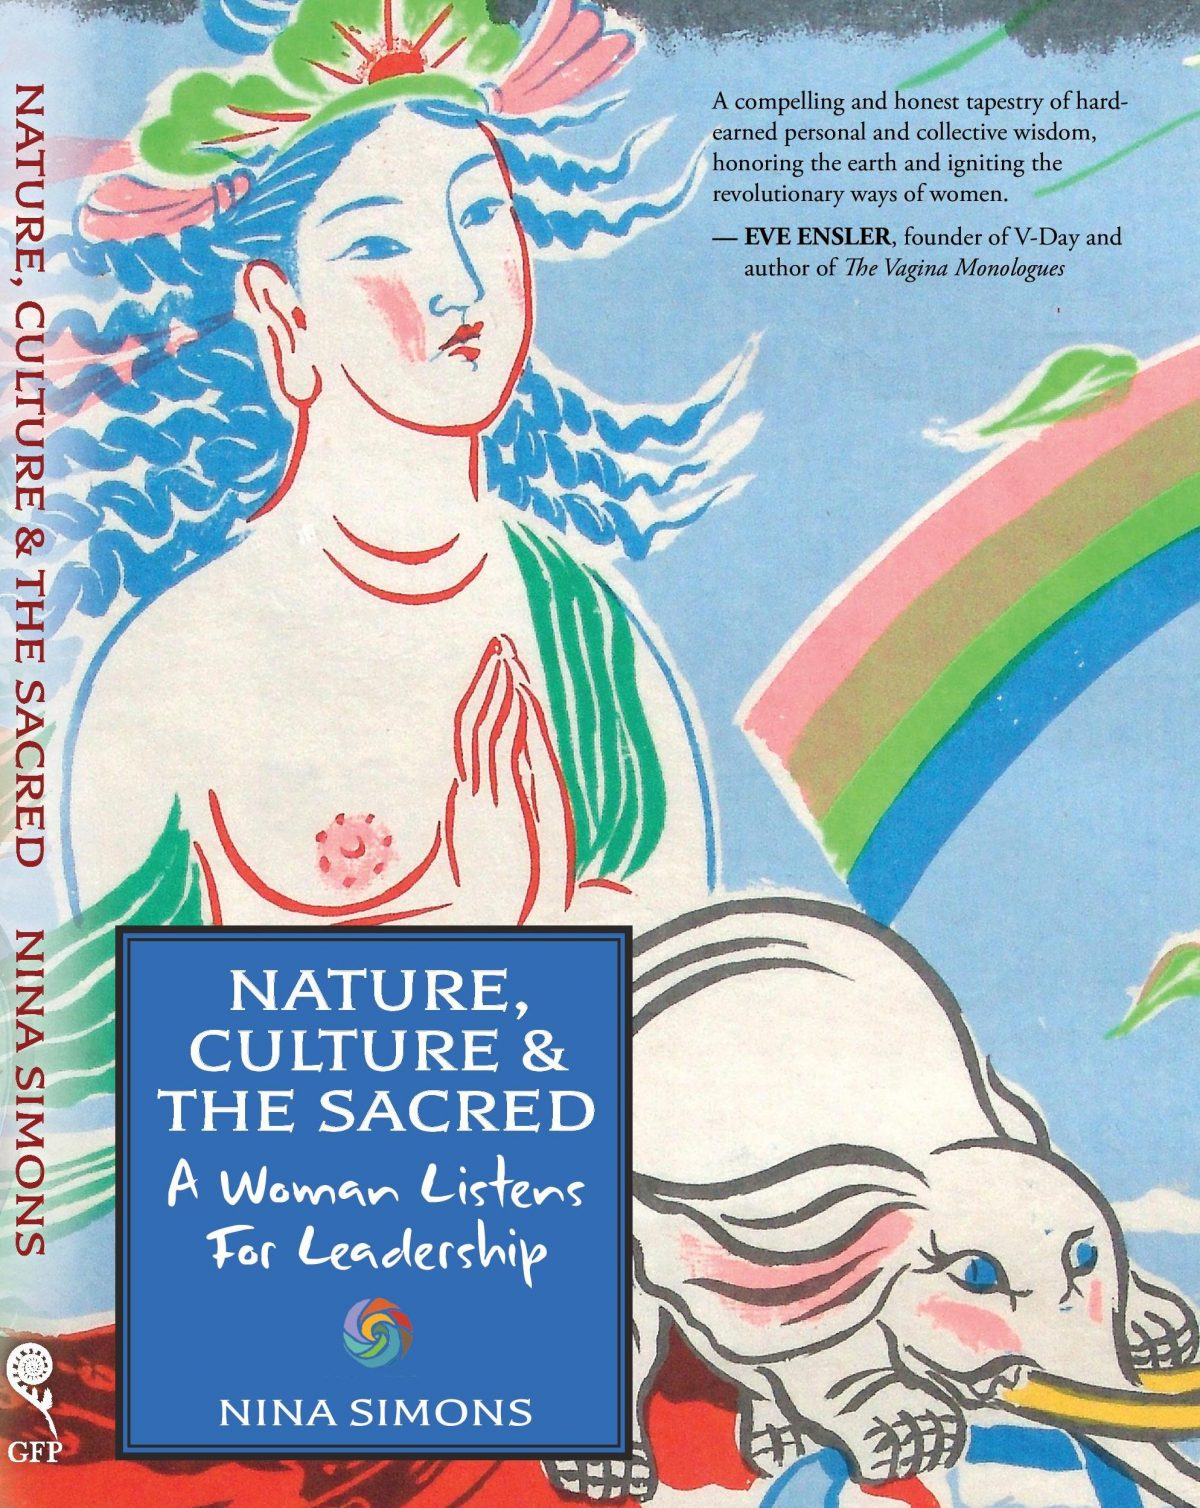 Nature, Culture and the Sacred: A Woman Listens for Leadership